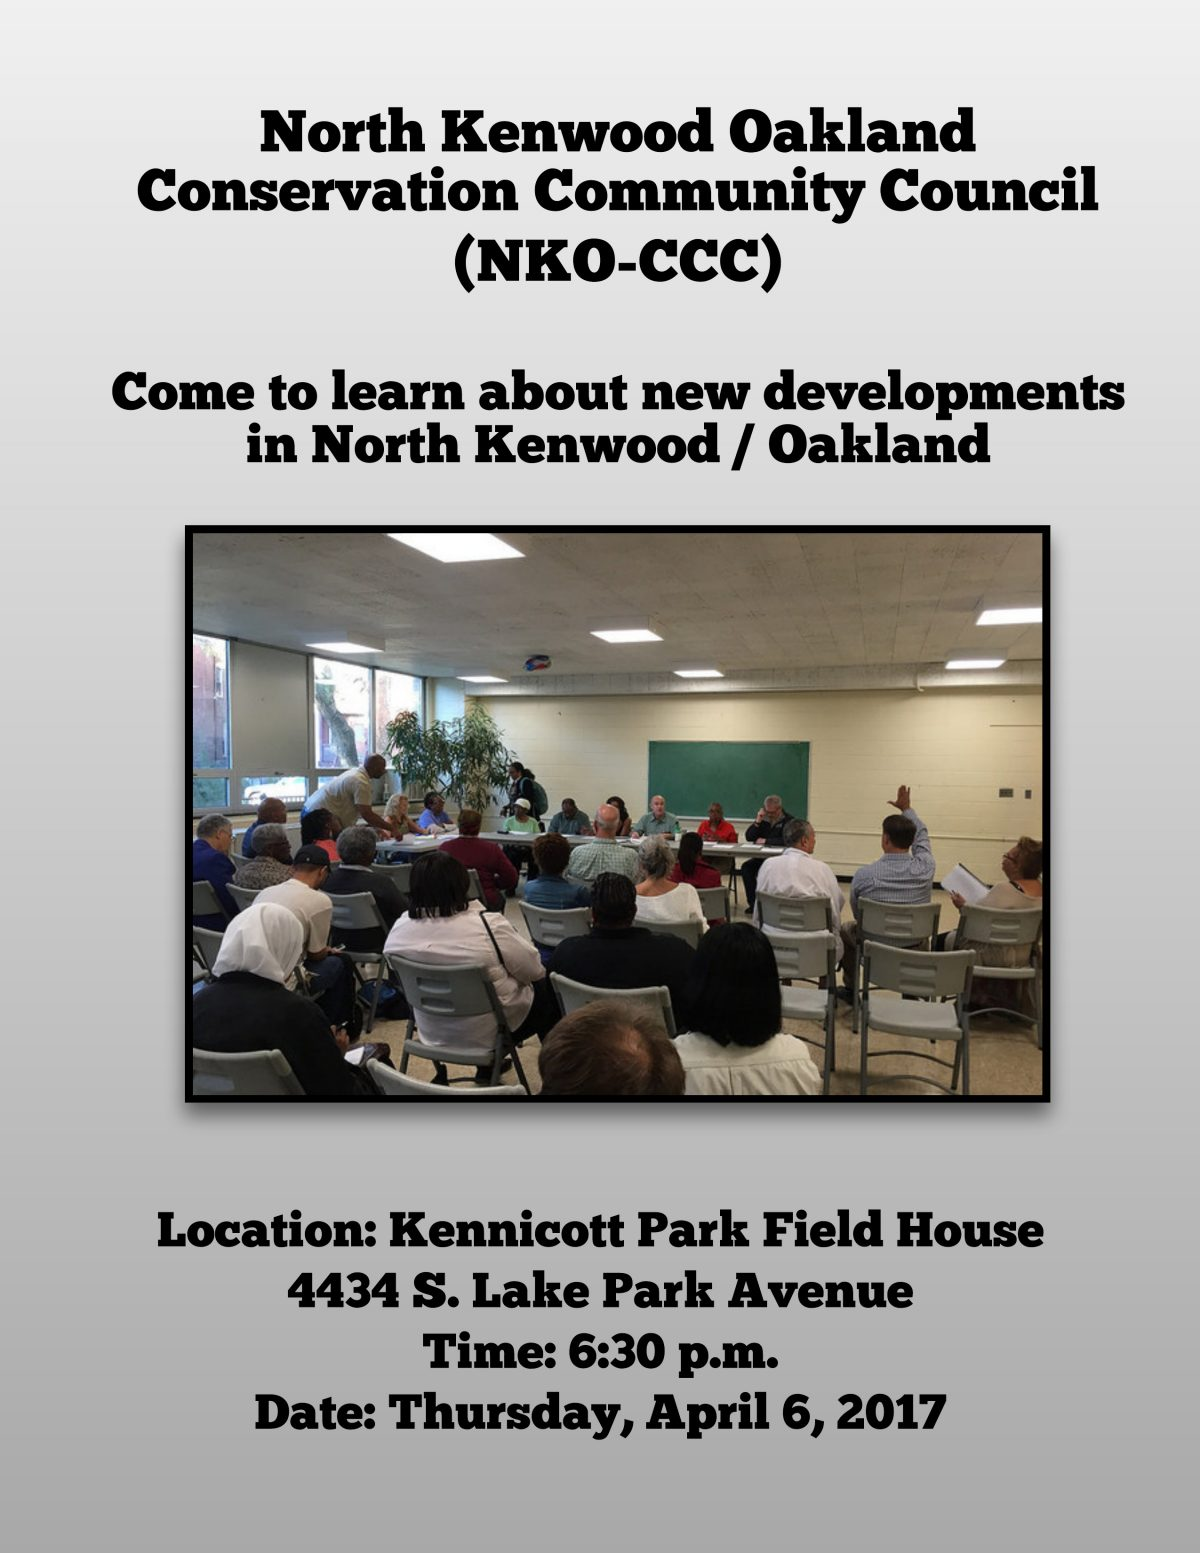 North Kenwood Oakland Community Conservation Council Meeting – Thursday, April 6, 2017 – 6:30pm